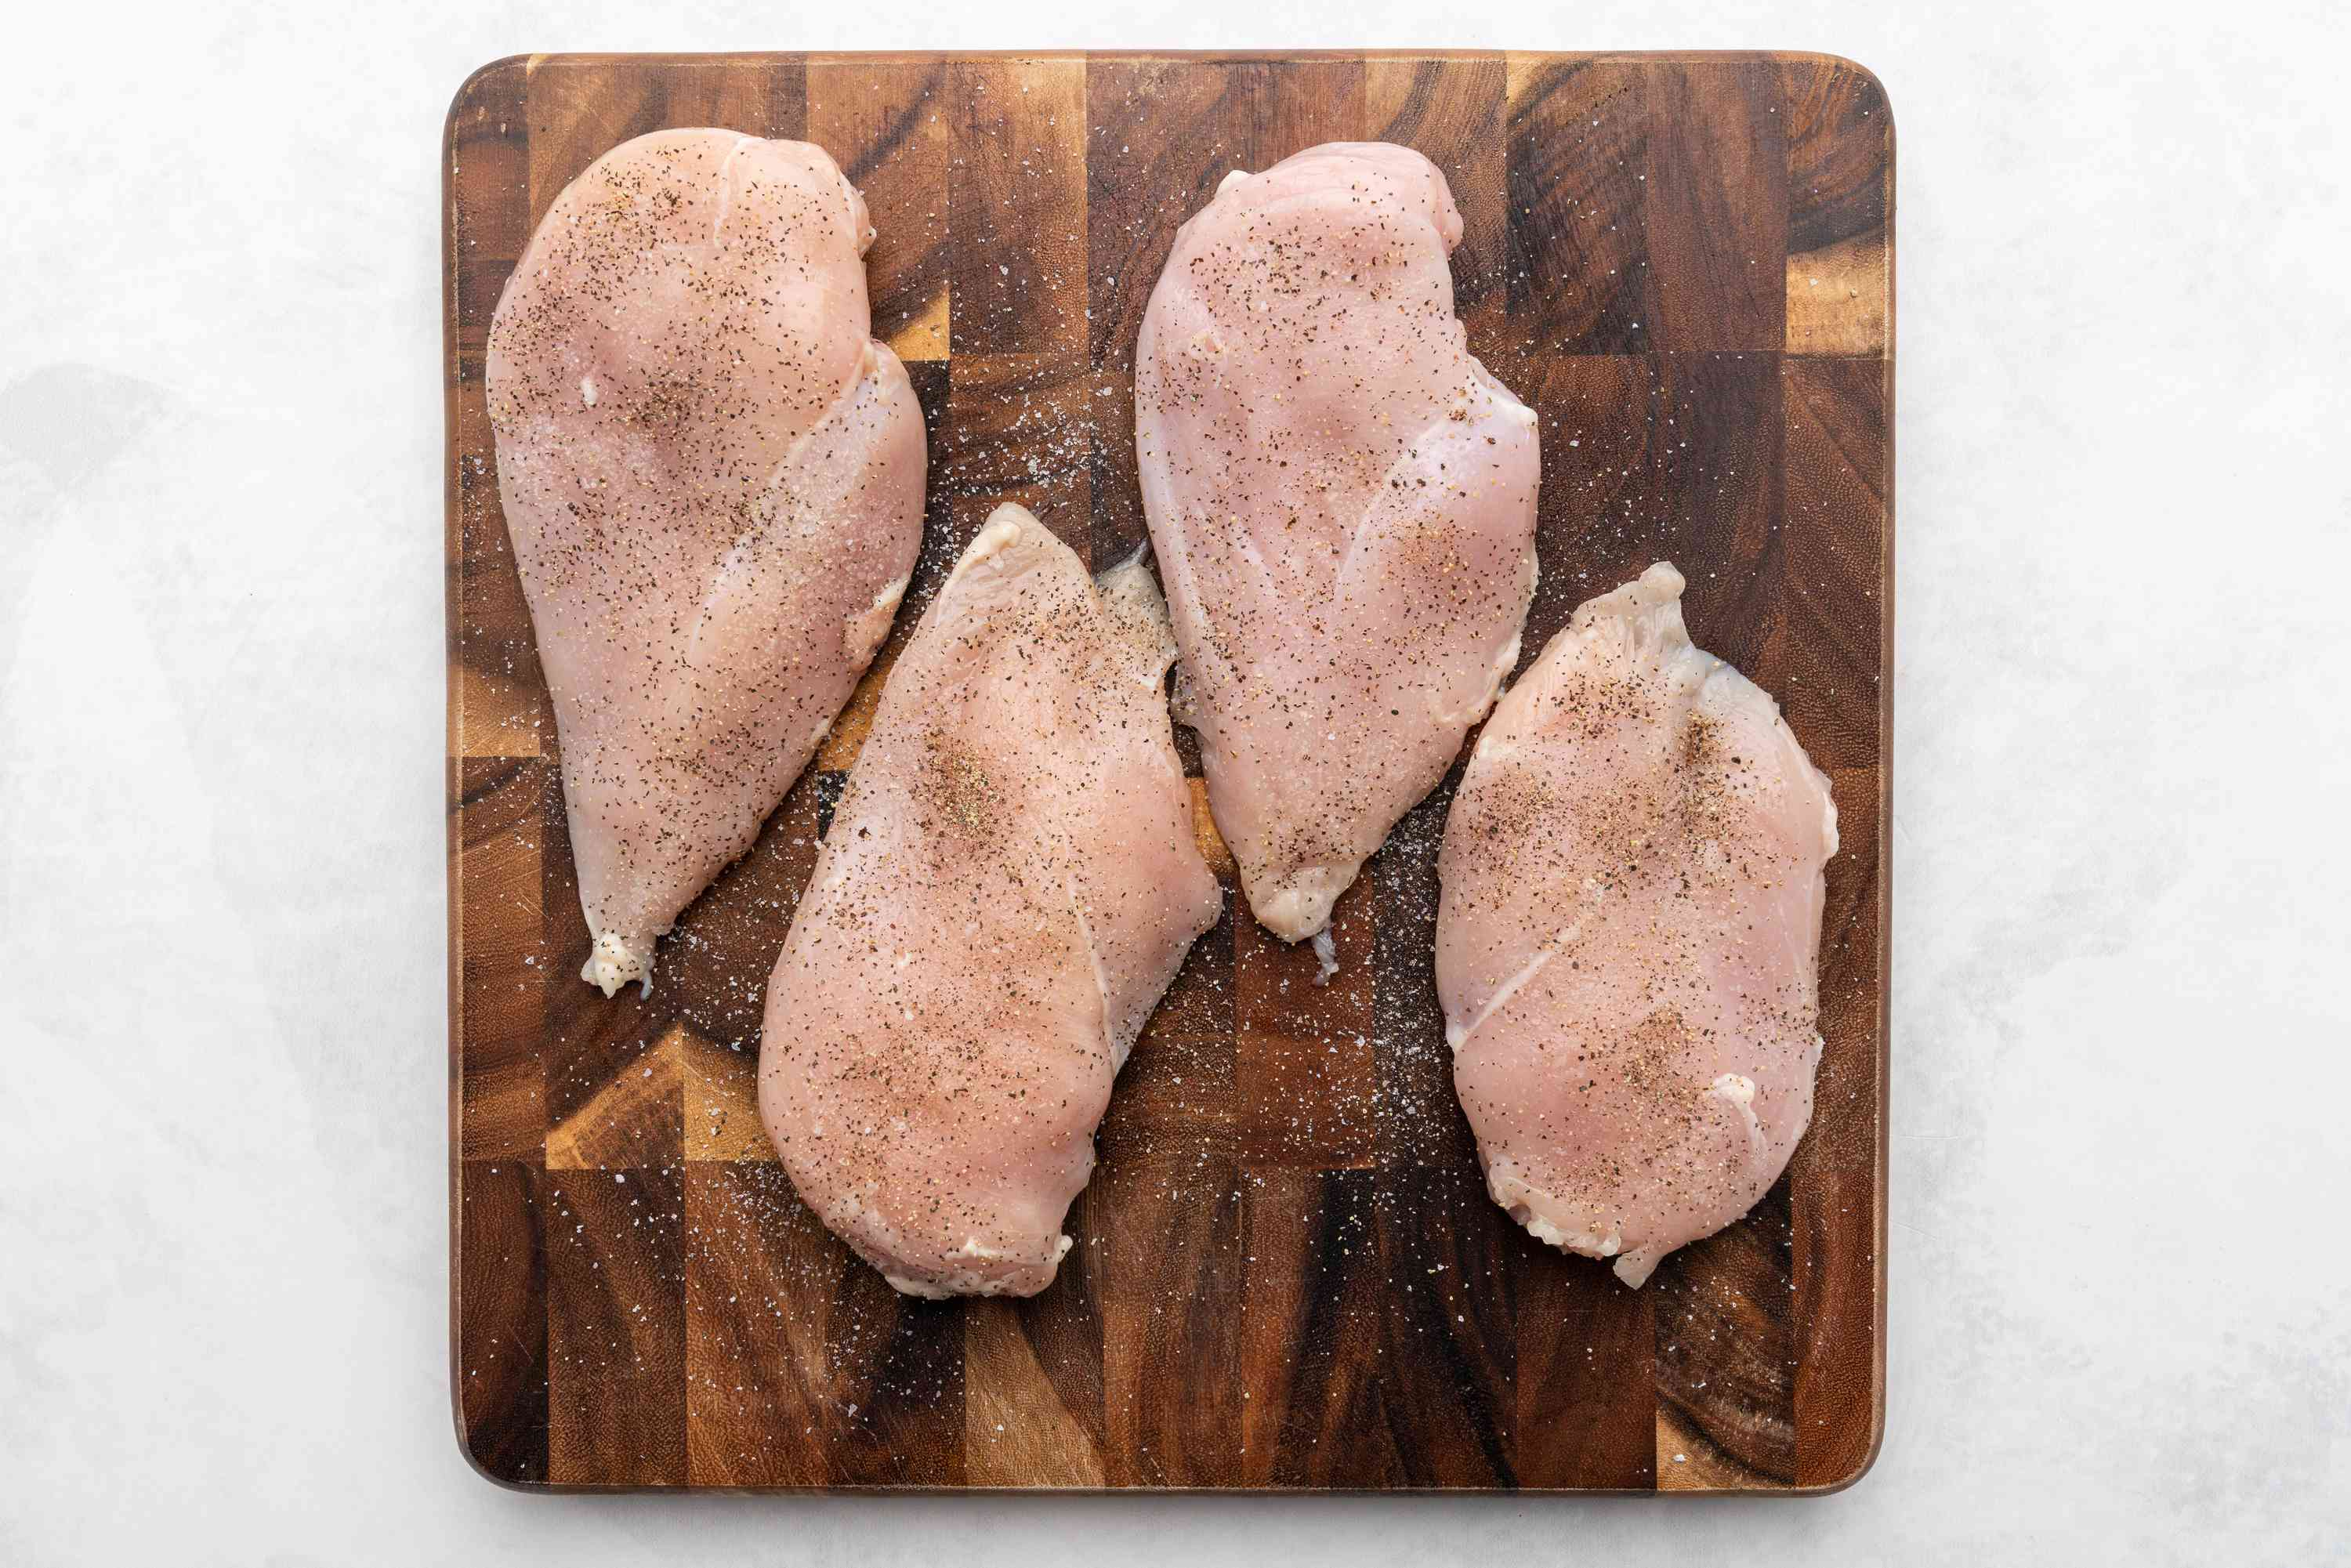 chicken seasoned with salt and pepper